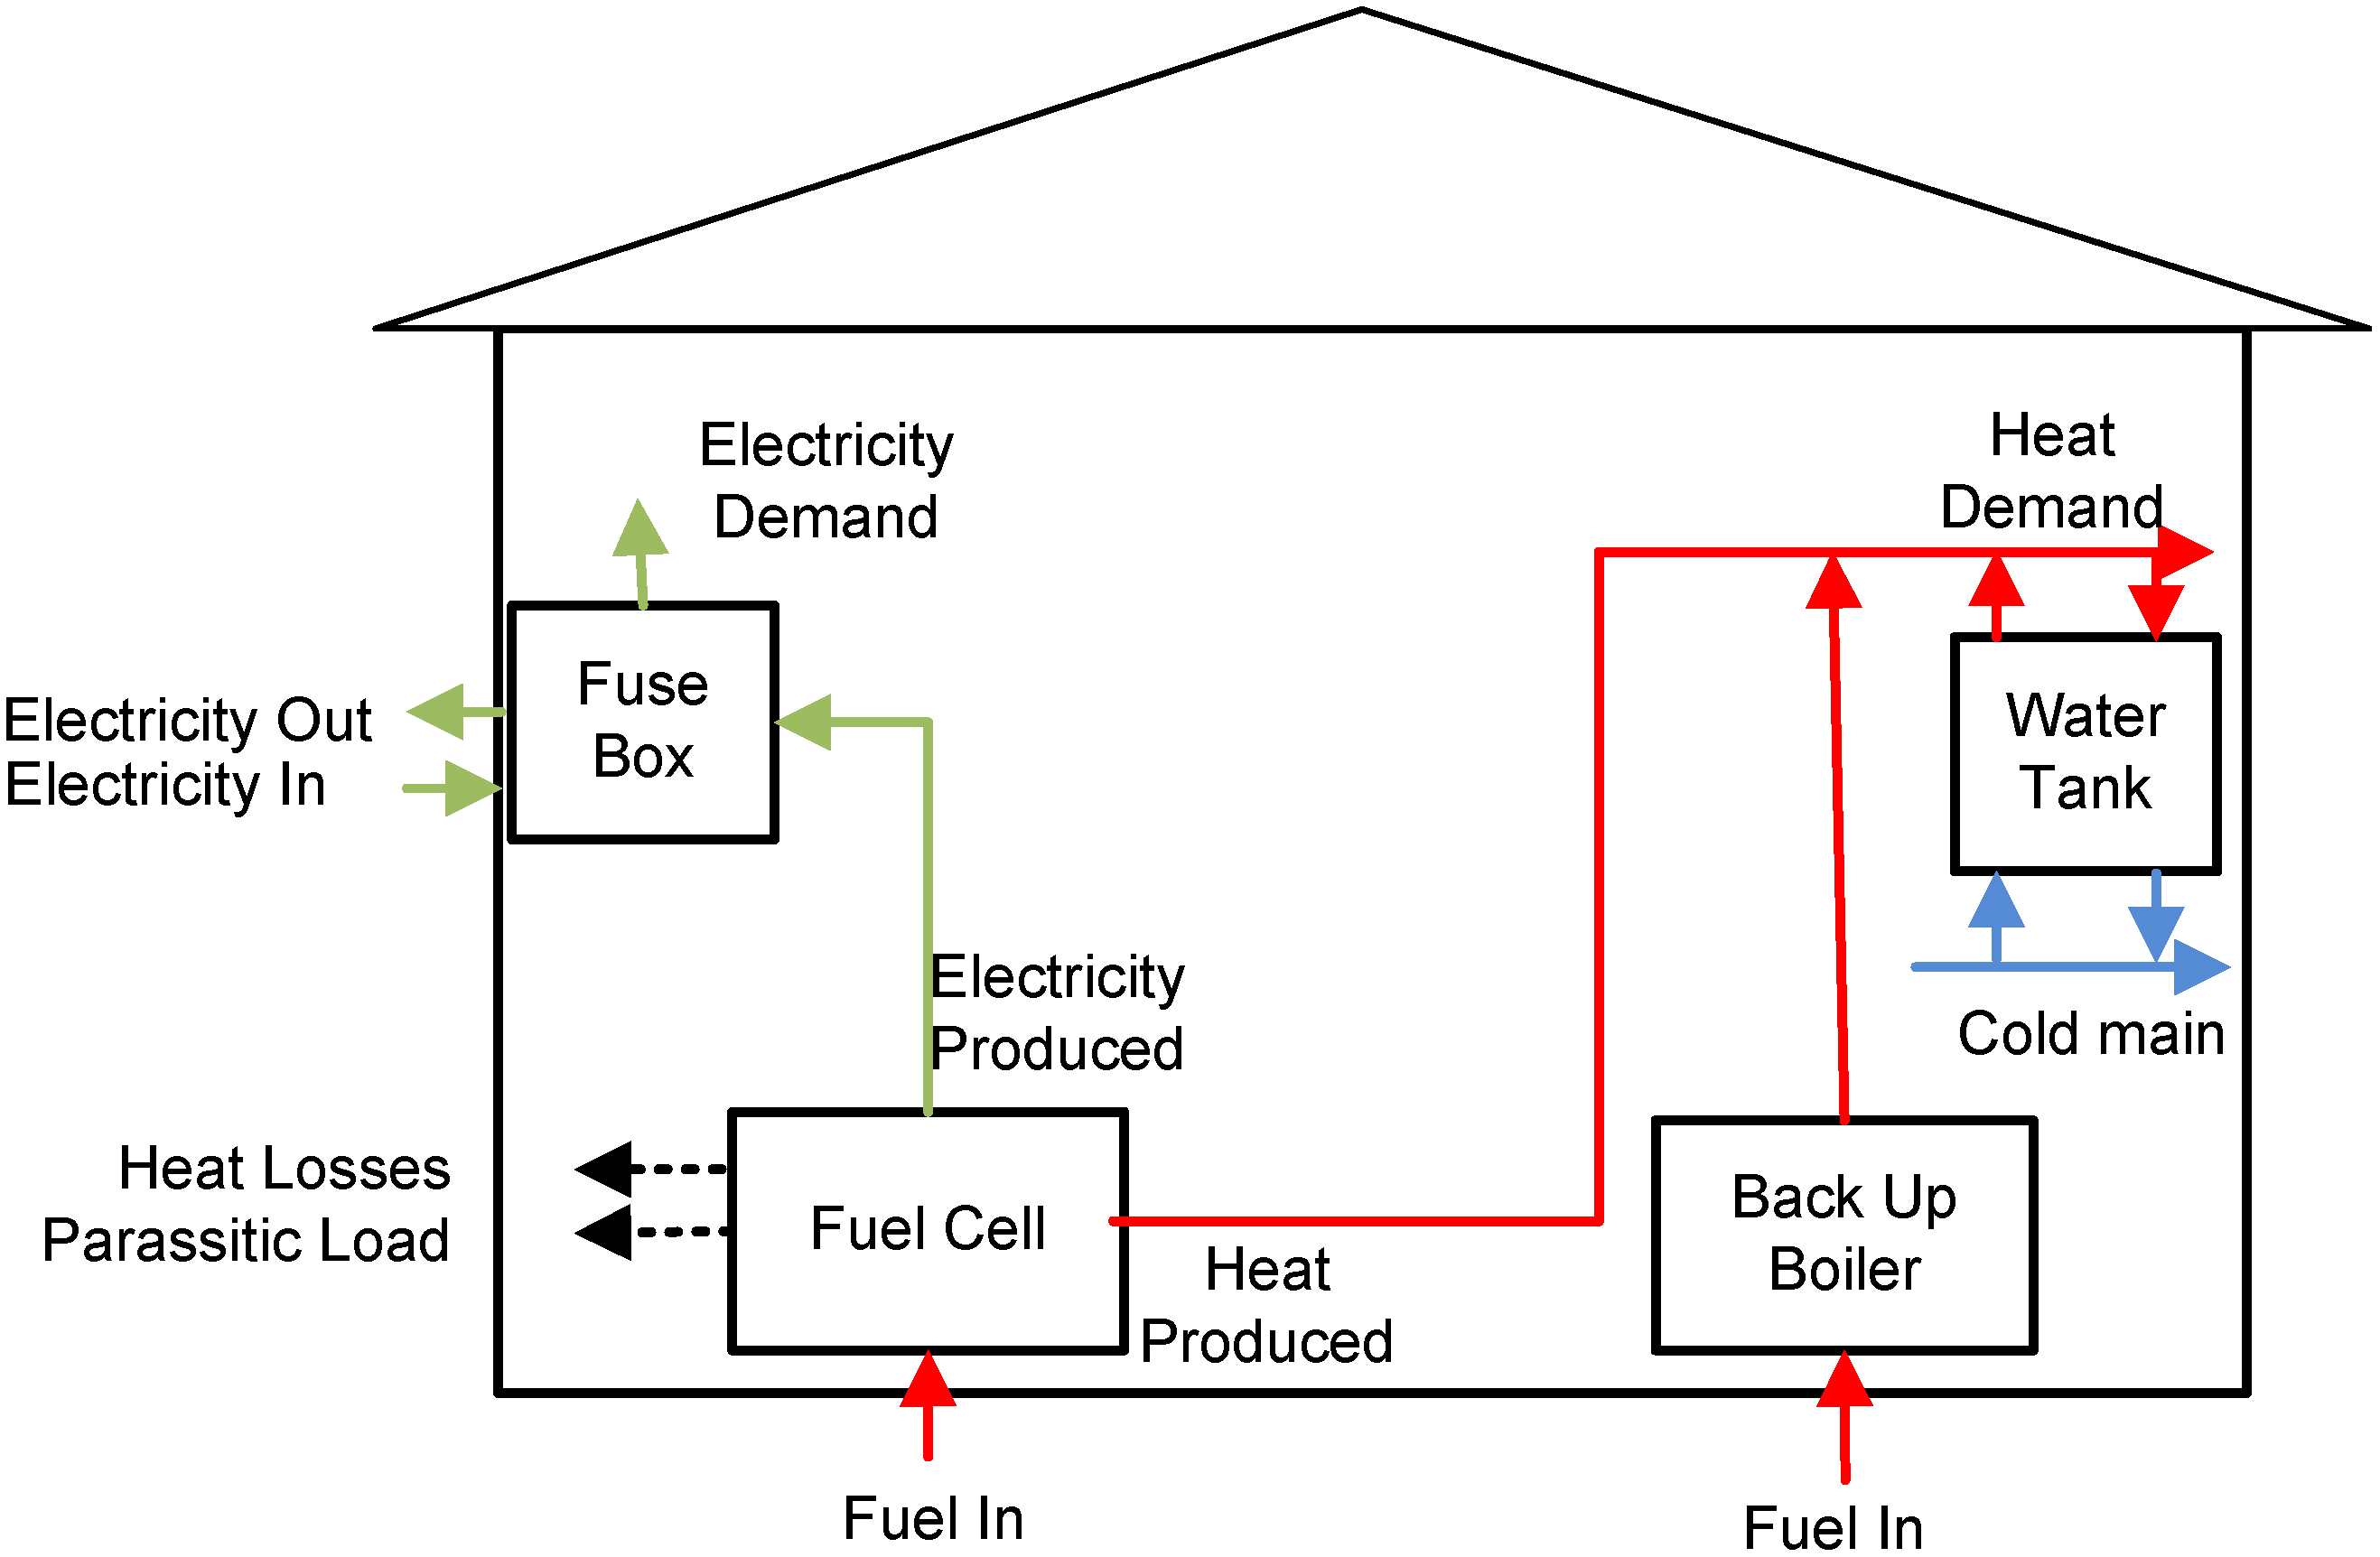 Energies Free Full Text Modelling Of A Solid Oxide Fuel Cell Chp Mfg Residential Fuse Box No